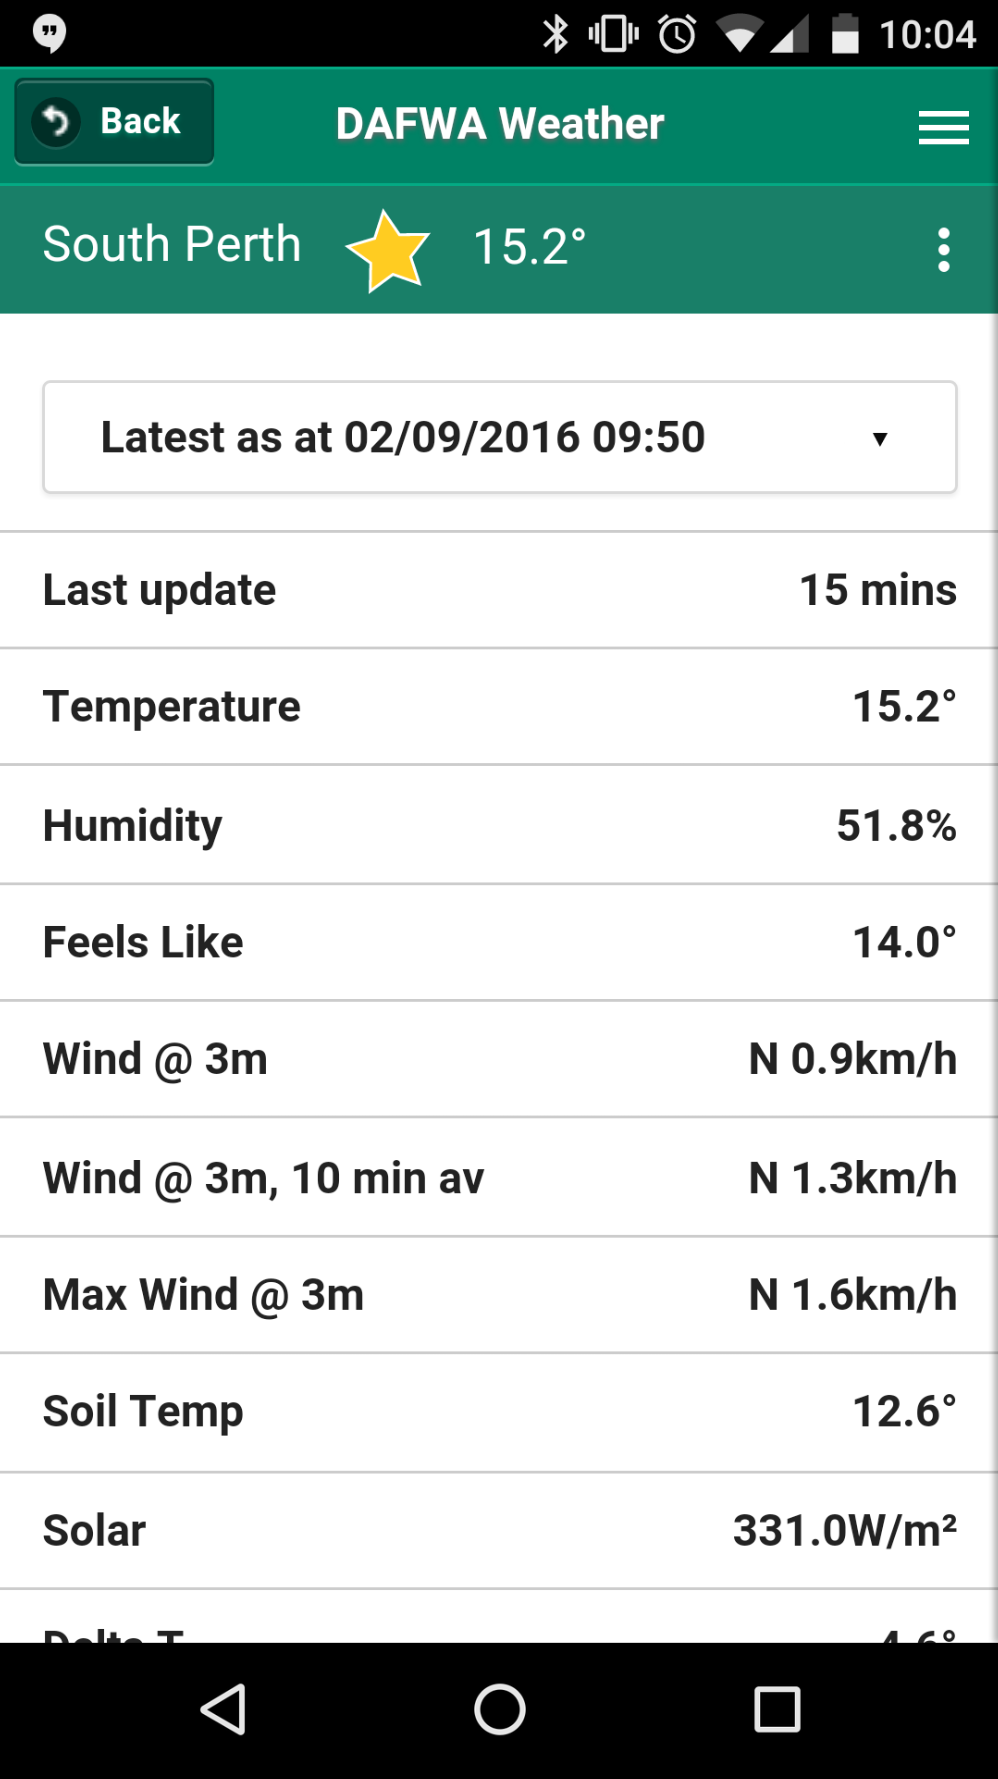 DAFWA Weather App